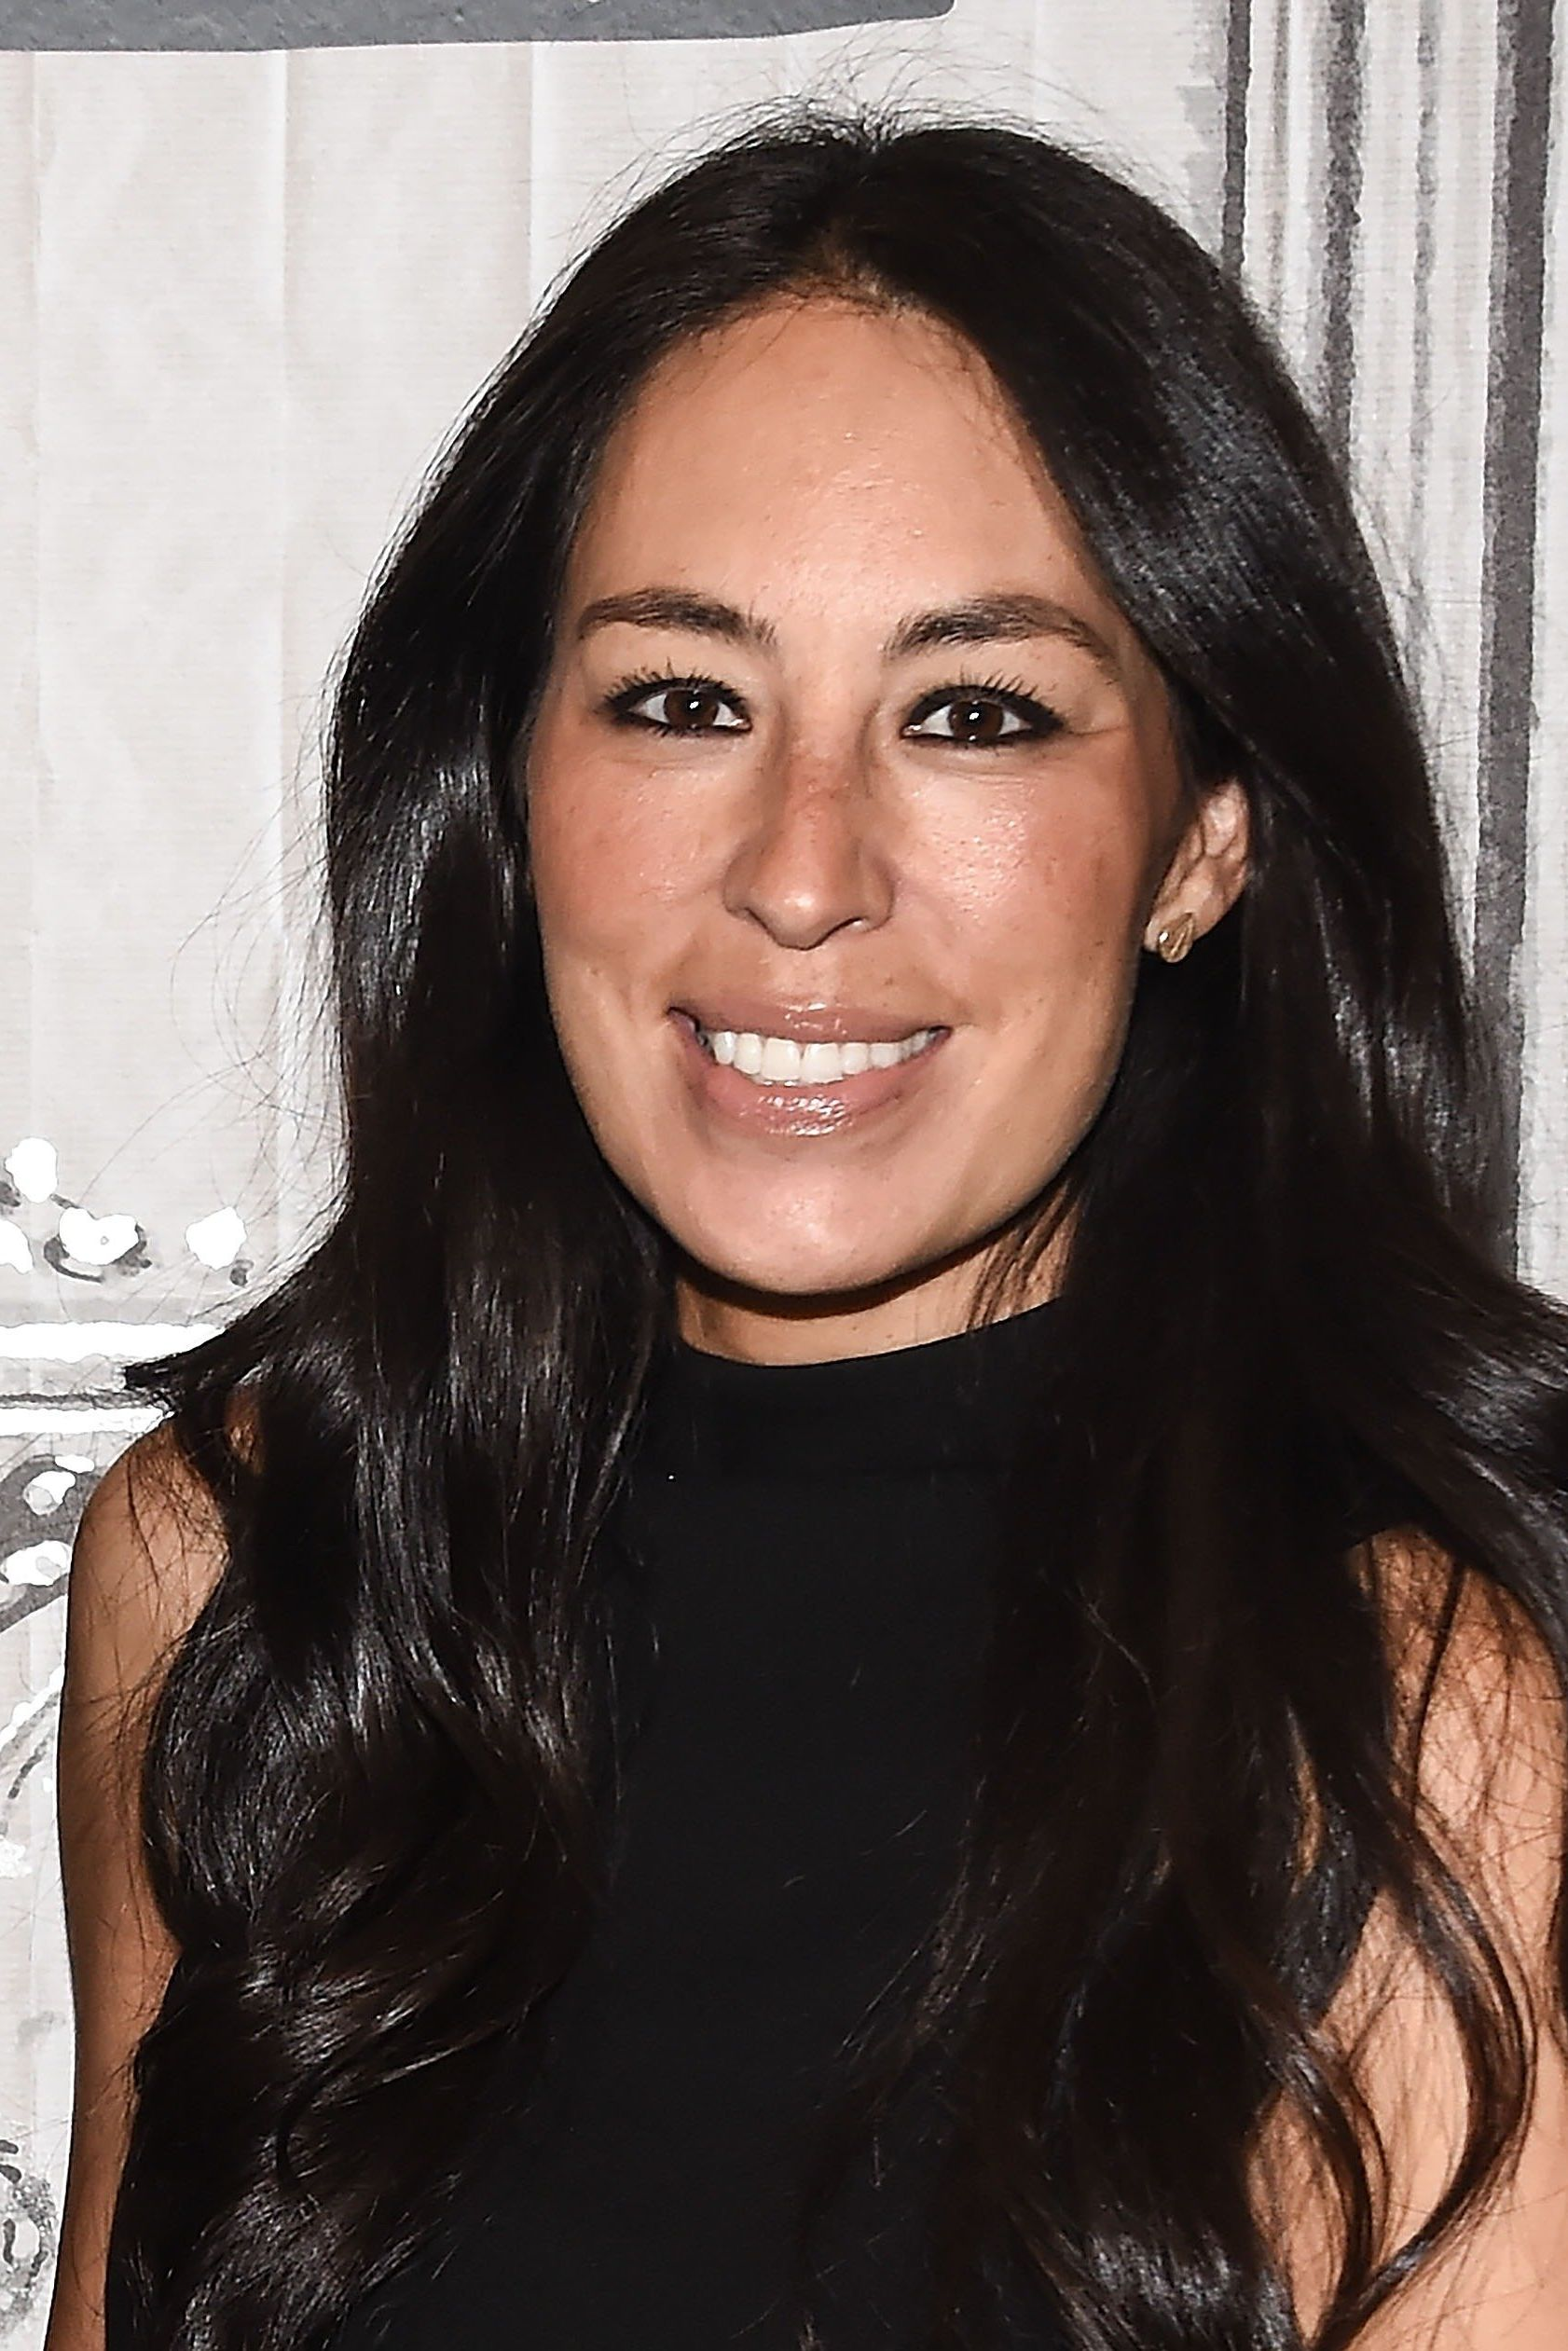 Did You Catch Joanna Gaines' Newest Accessory on Fixer Upper?